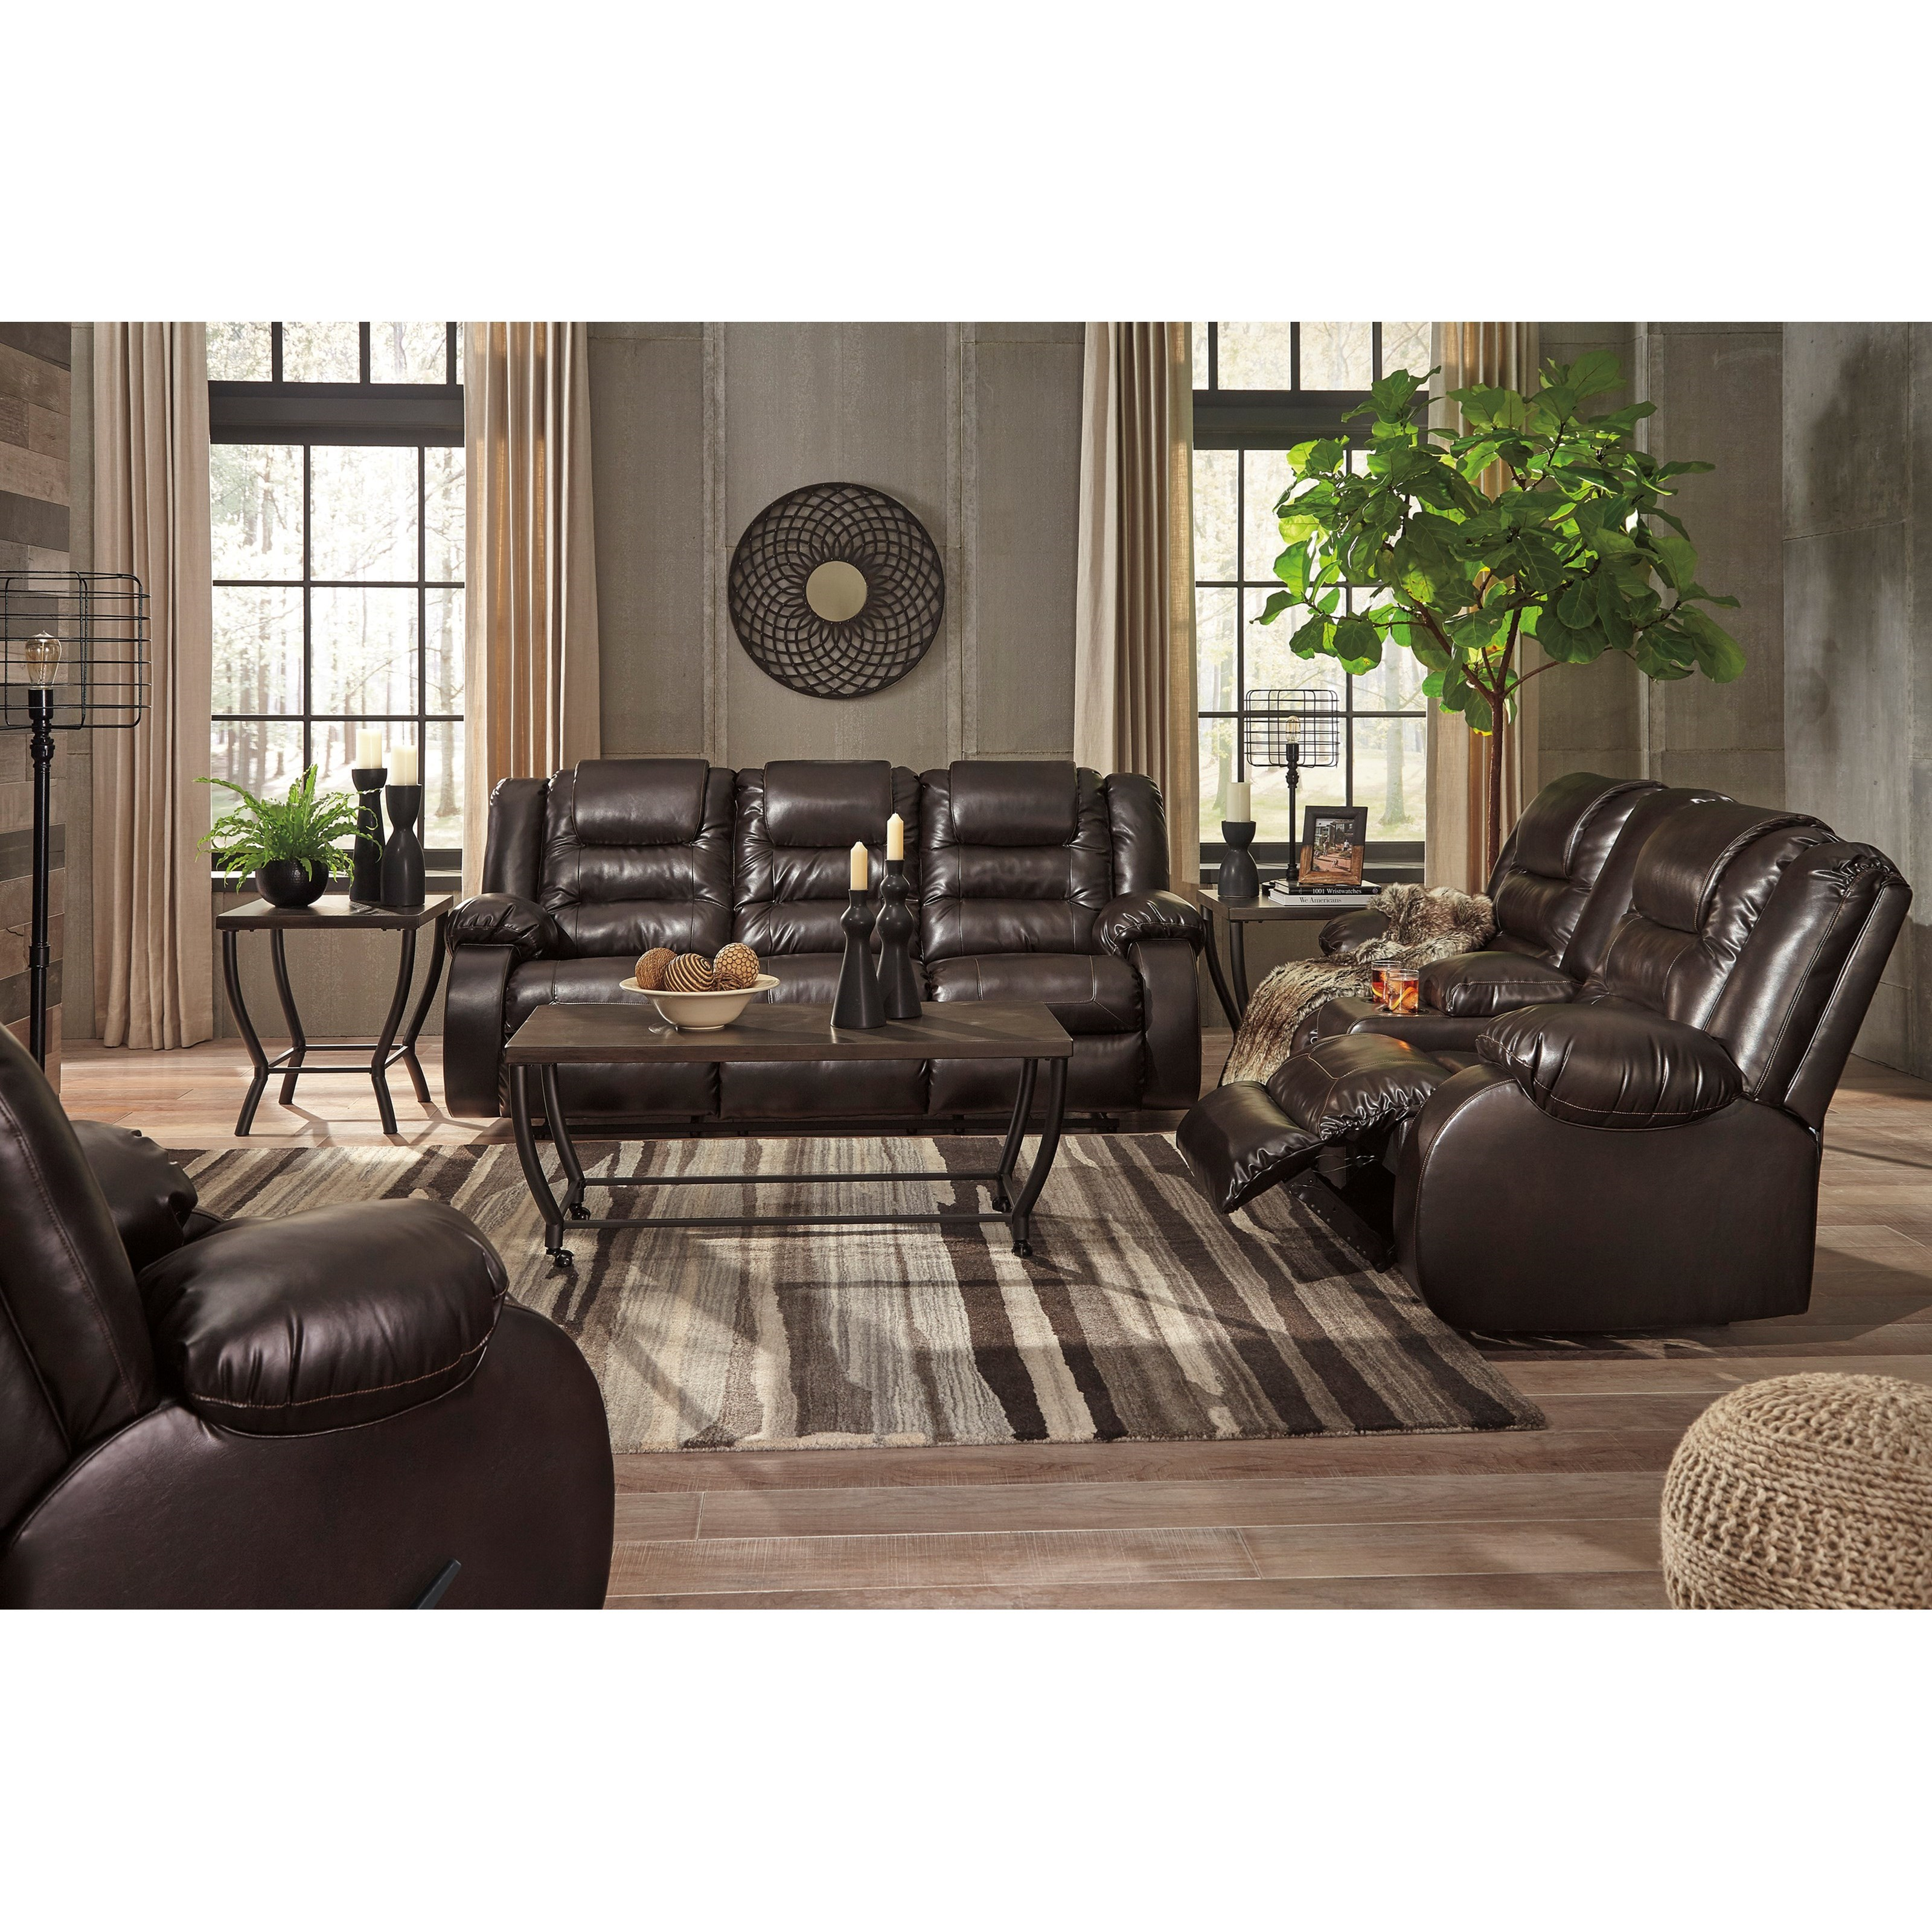 Vacherie Reclining Living Room Group by Signature Design by Ashley at Northeast Factory Direct